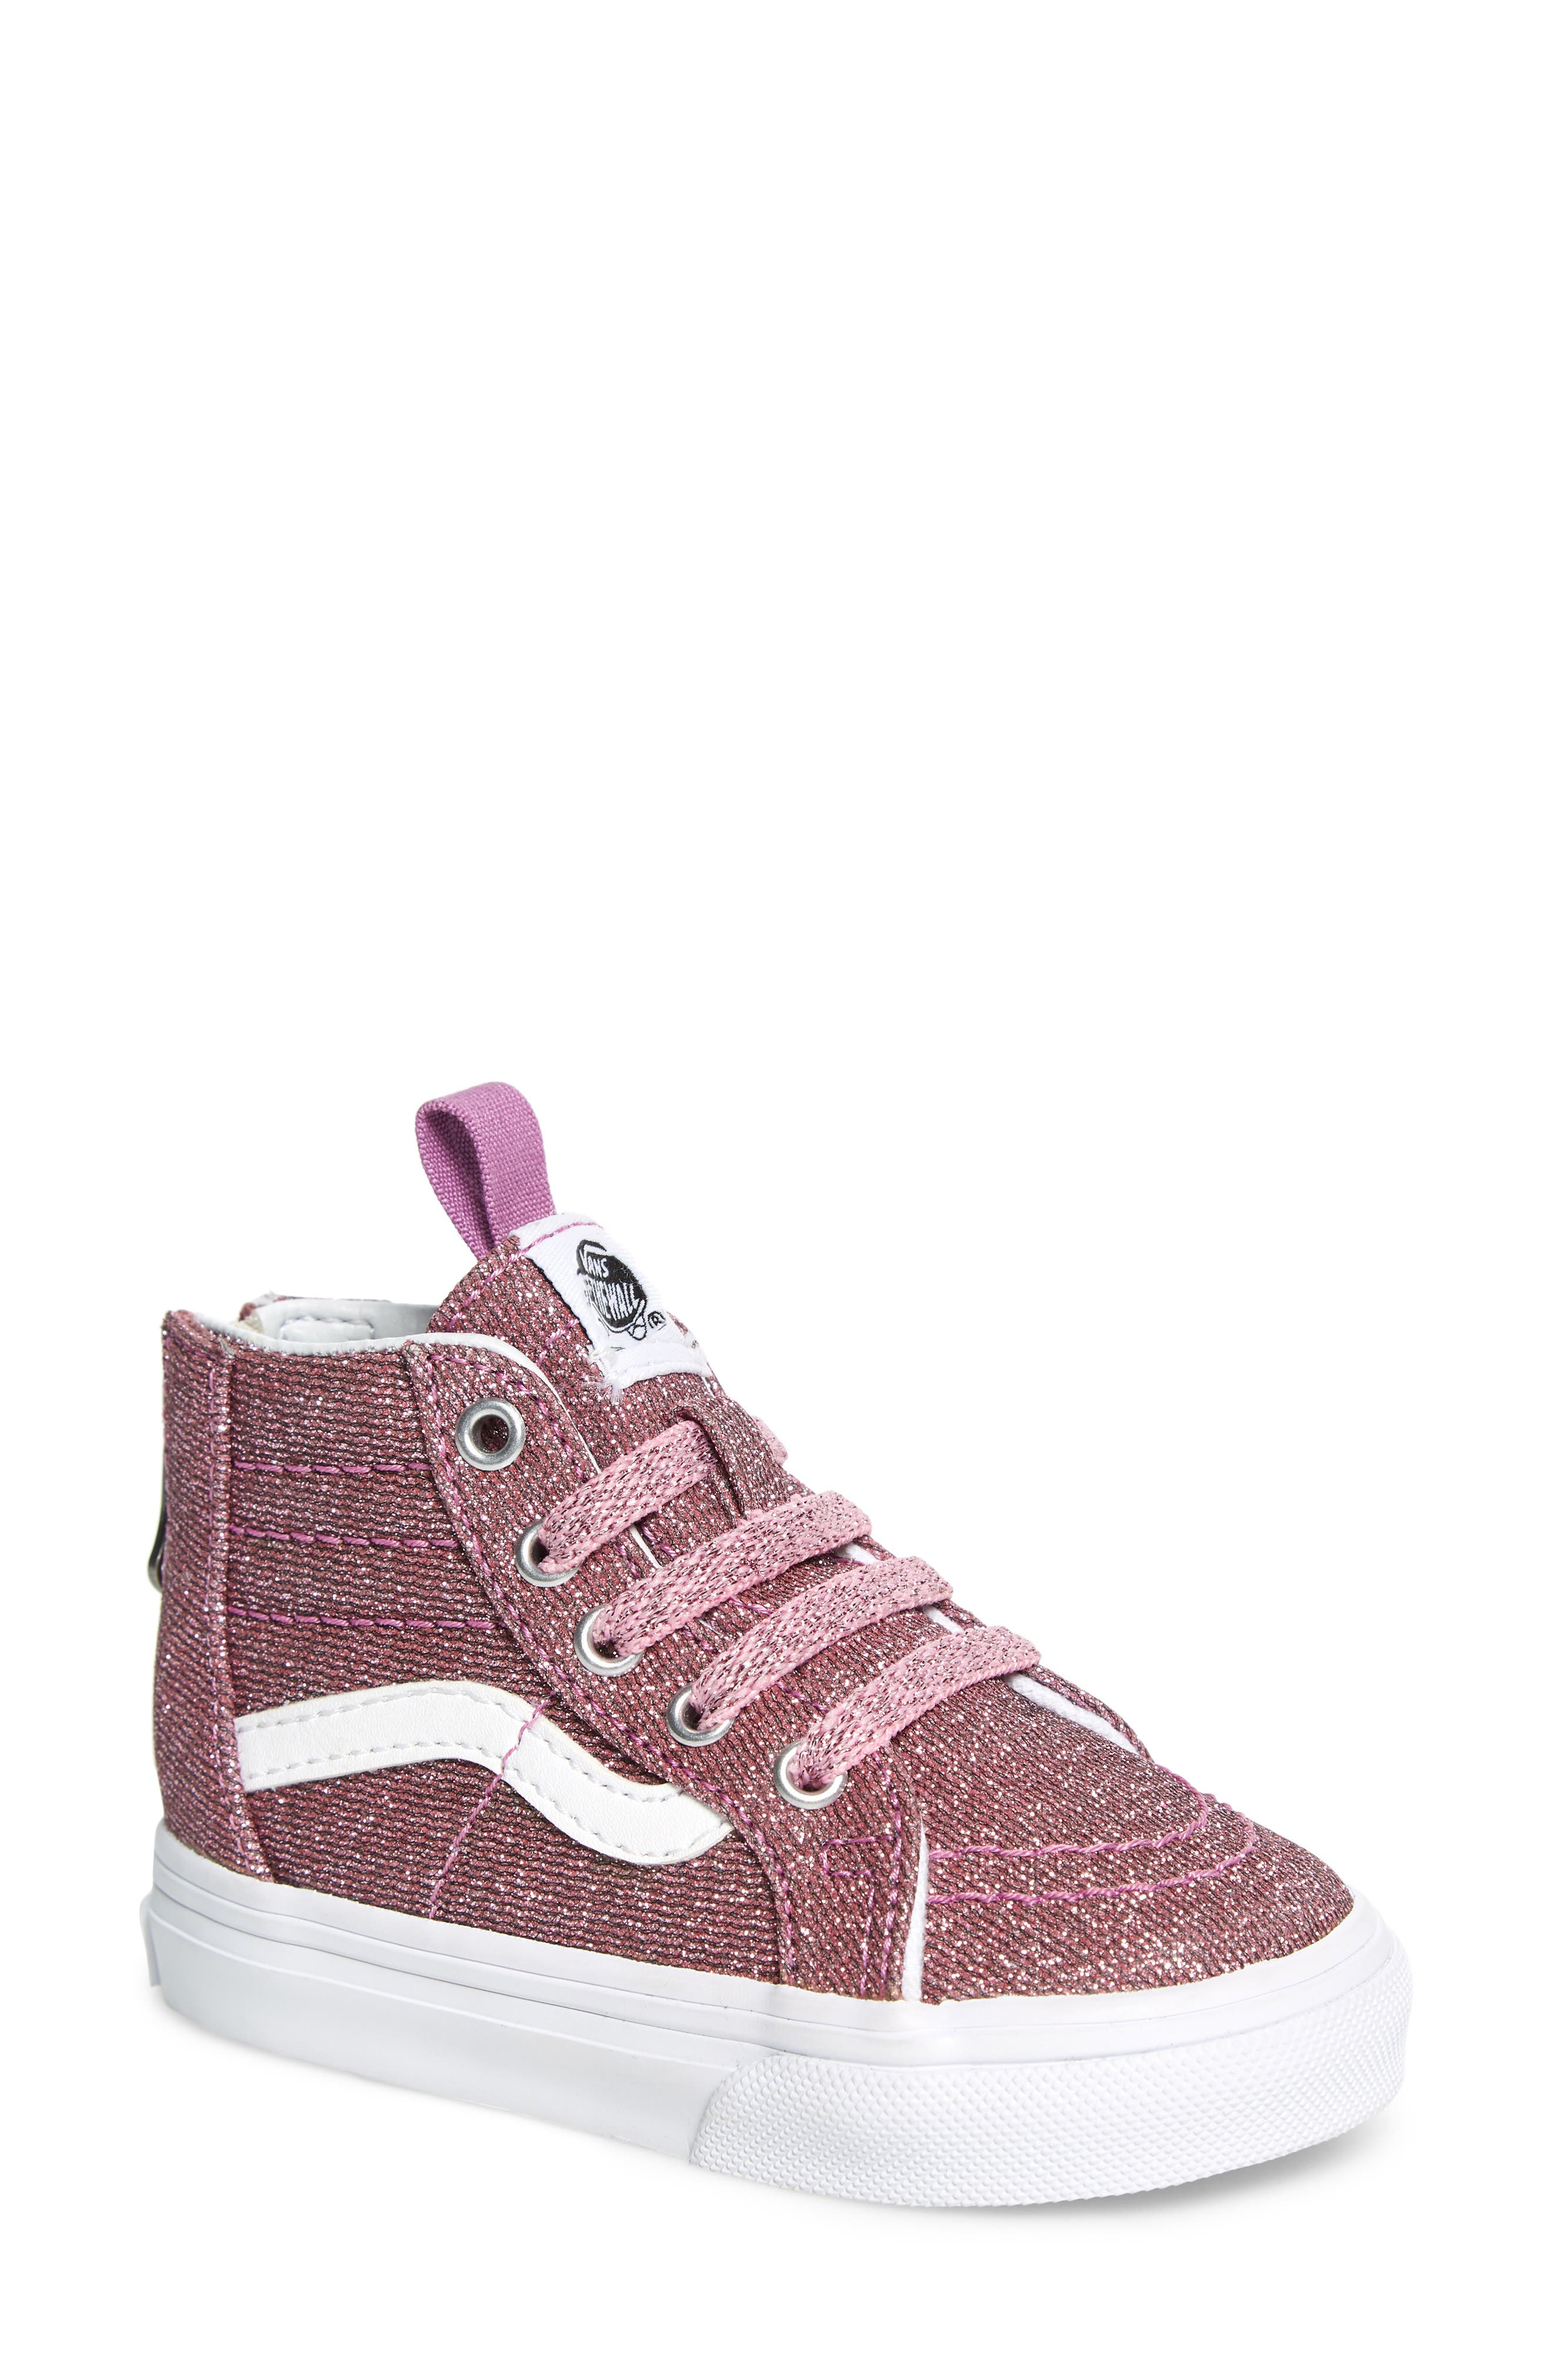 Sk8-Hi Zip Sneaker,                             Main thumbnail 1, color,                             LUREX GLITTER PINK/ TRUE WHITE